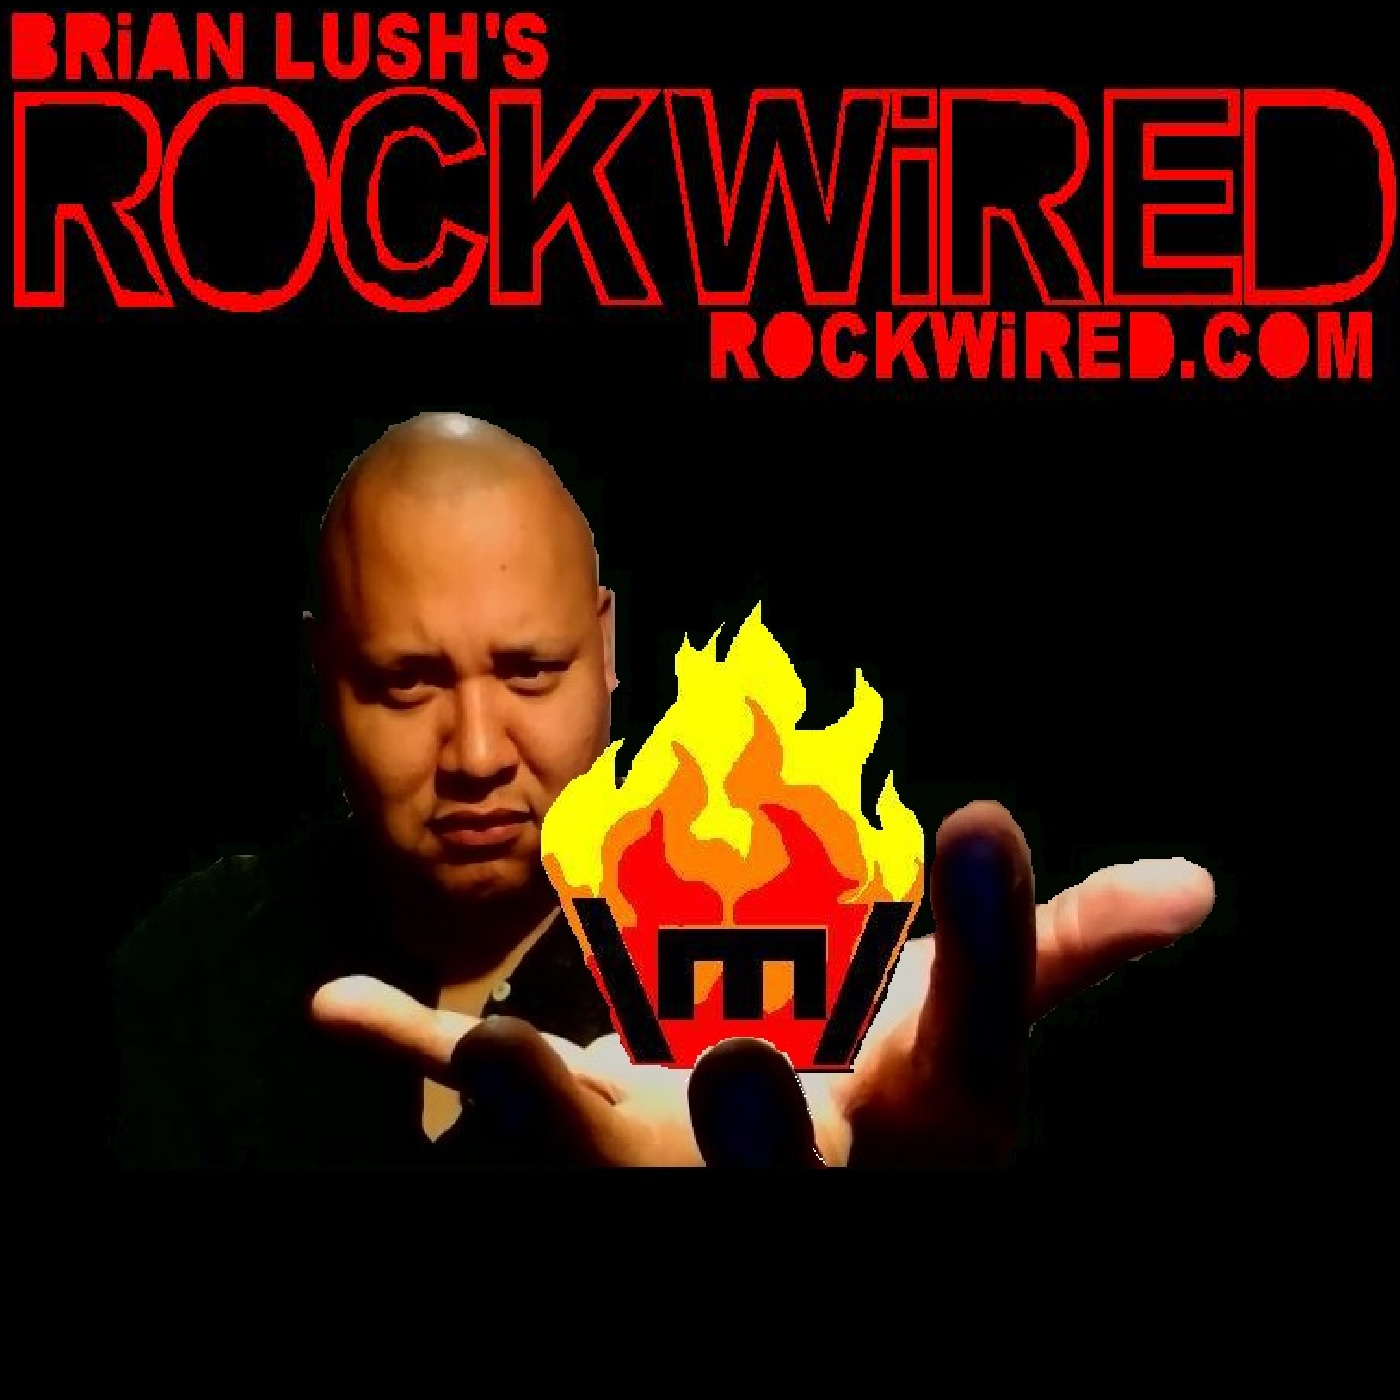 BrianLushRockwired2